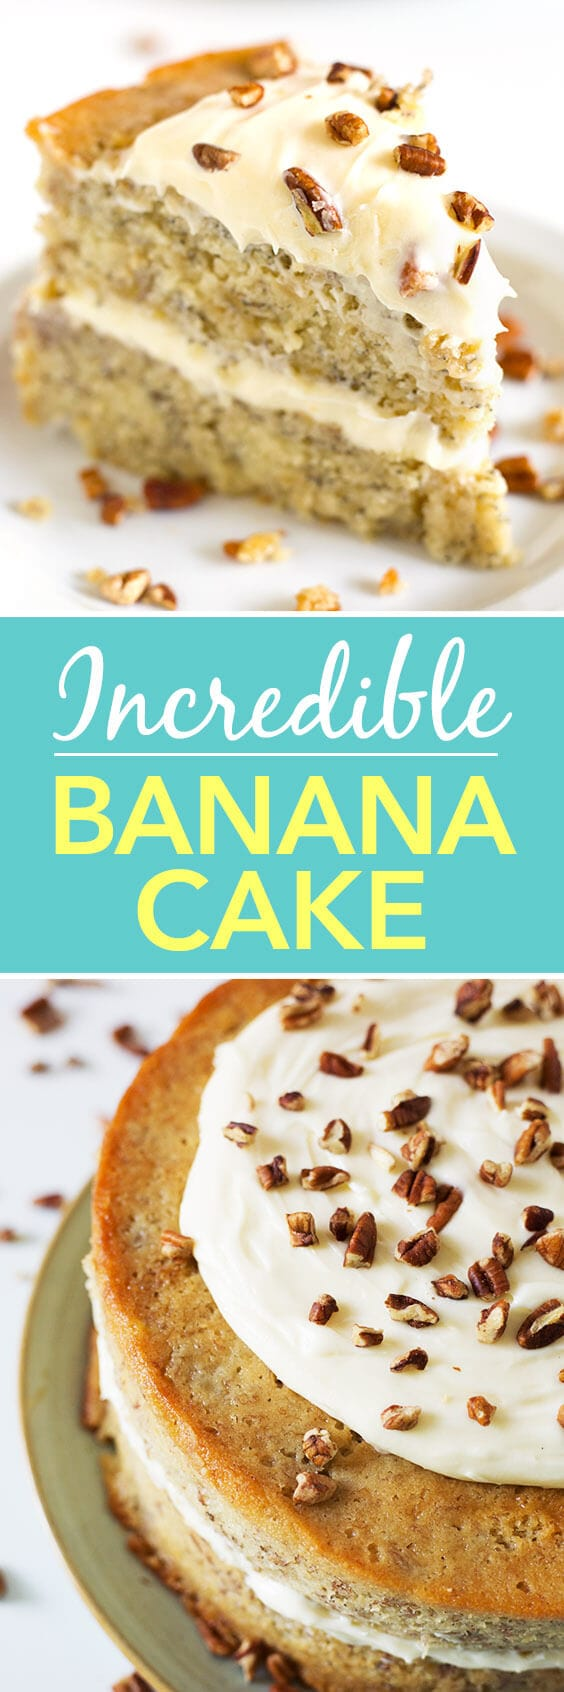 This Incredible Banana Cake is very moist and rich. Perfect for birthdays and special occasions, or anytime! simplyhappyfoodie.com